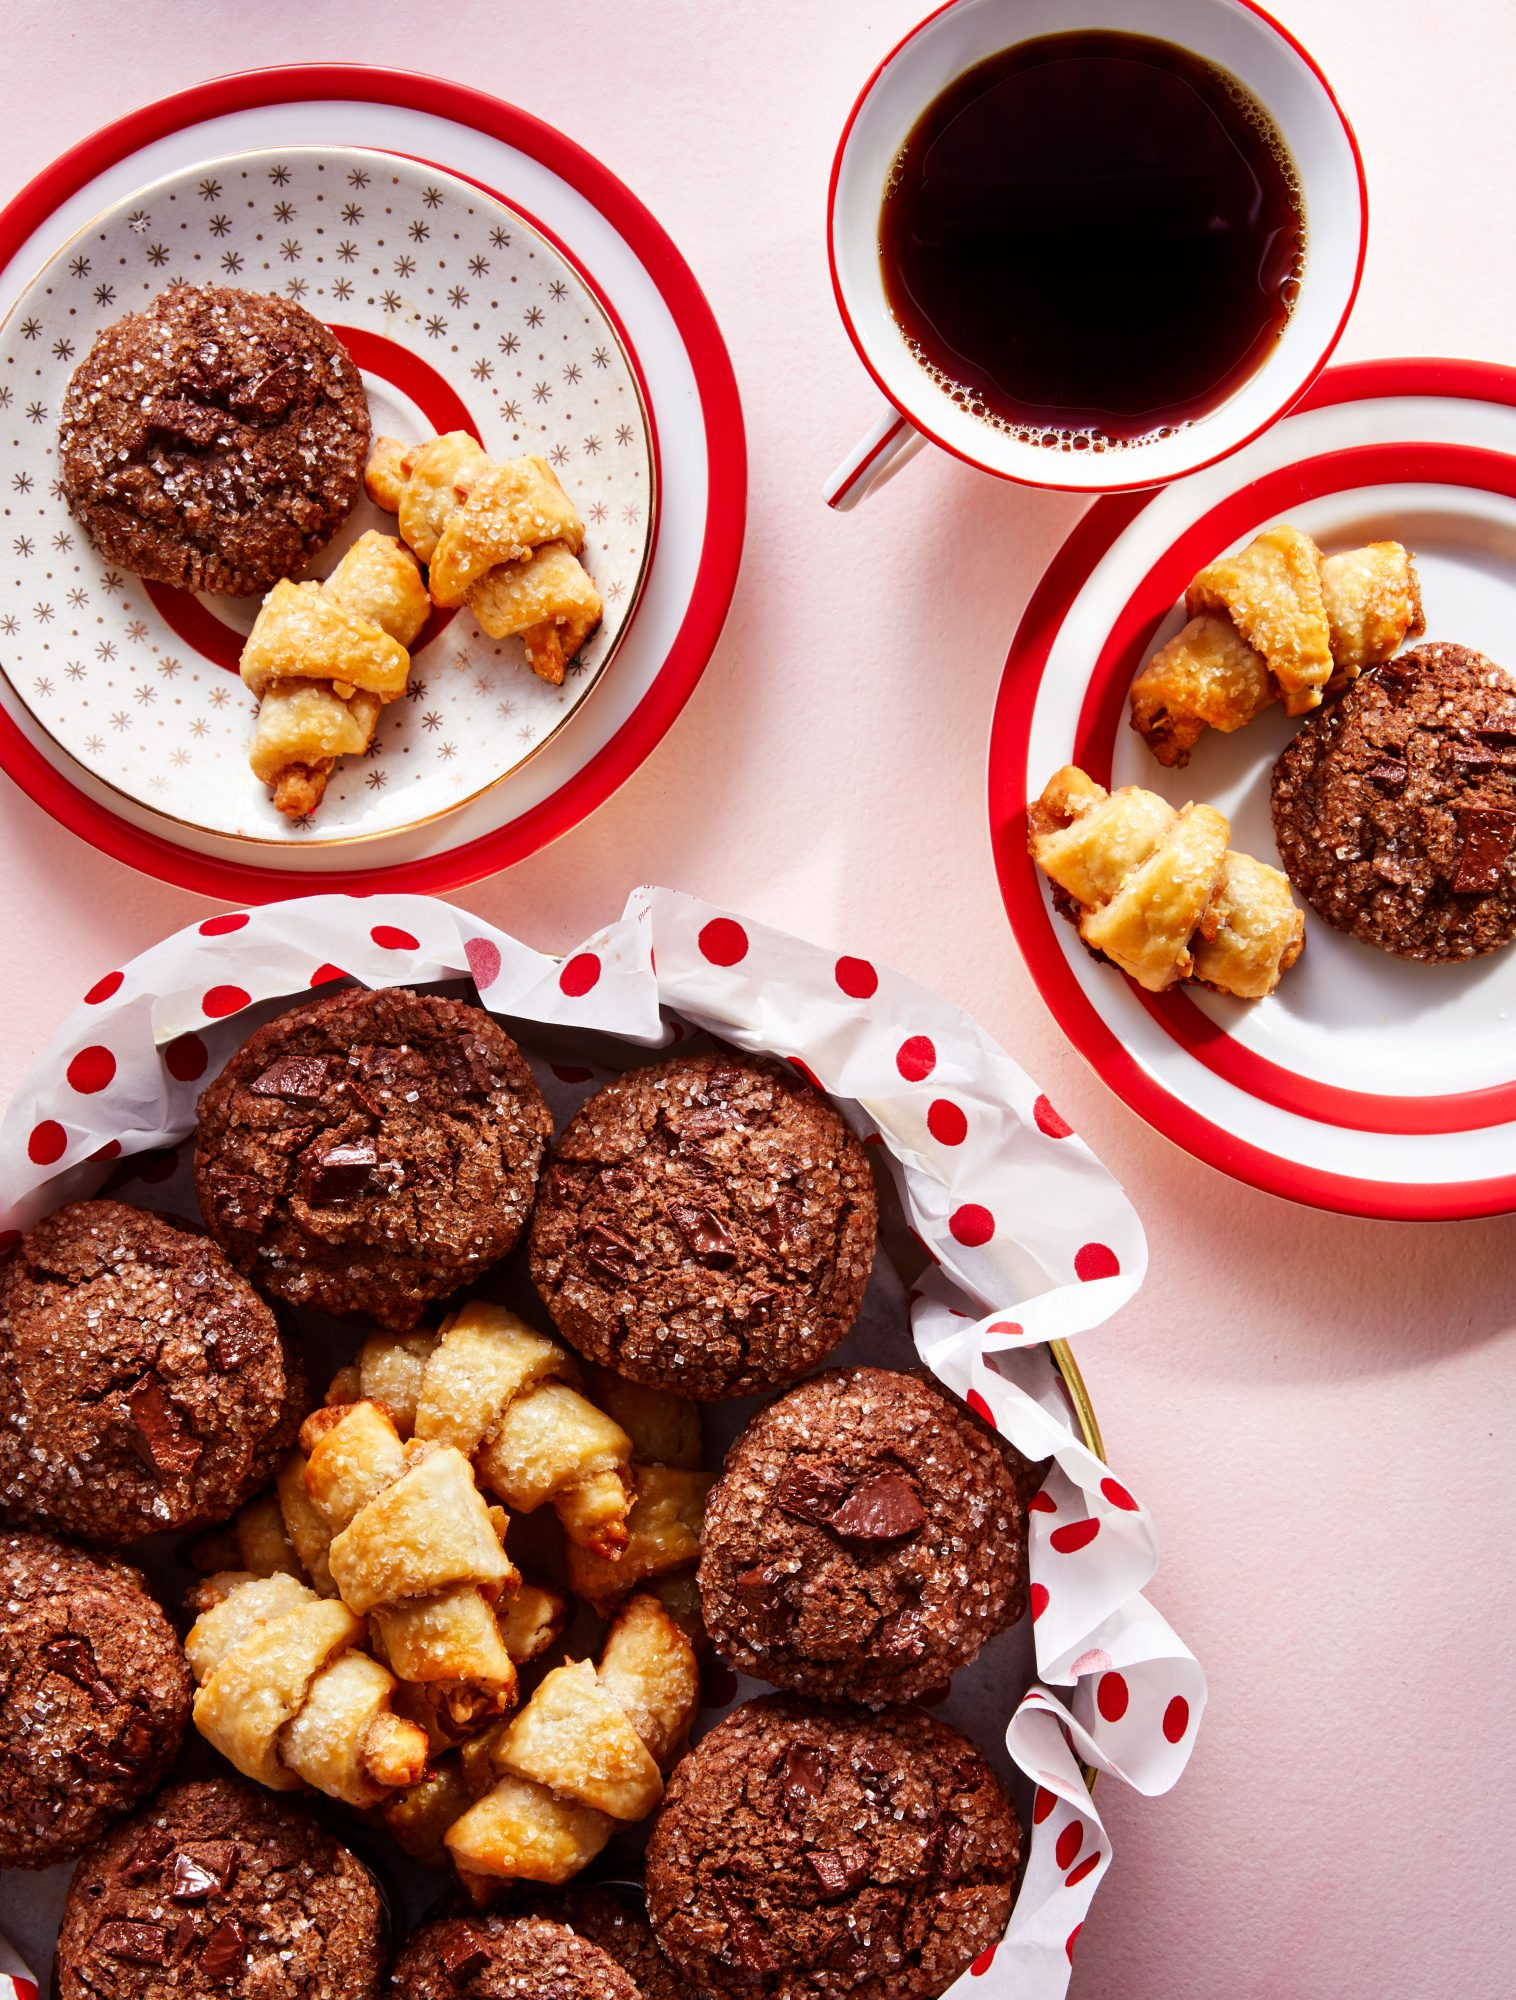 Sugar-and-Spice Rugelach Cookies